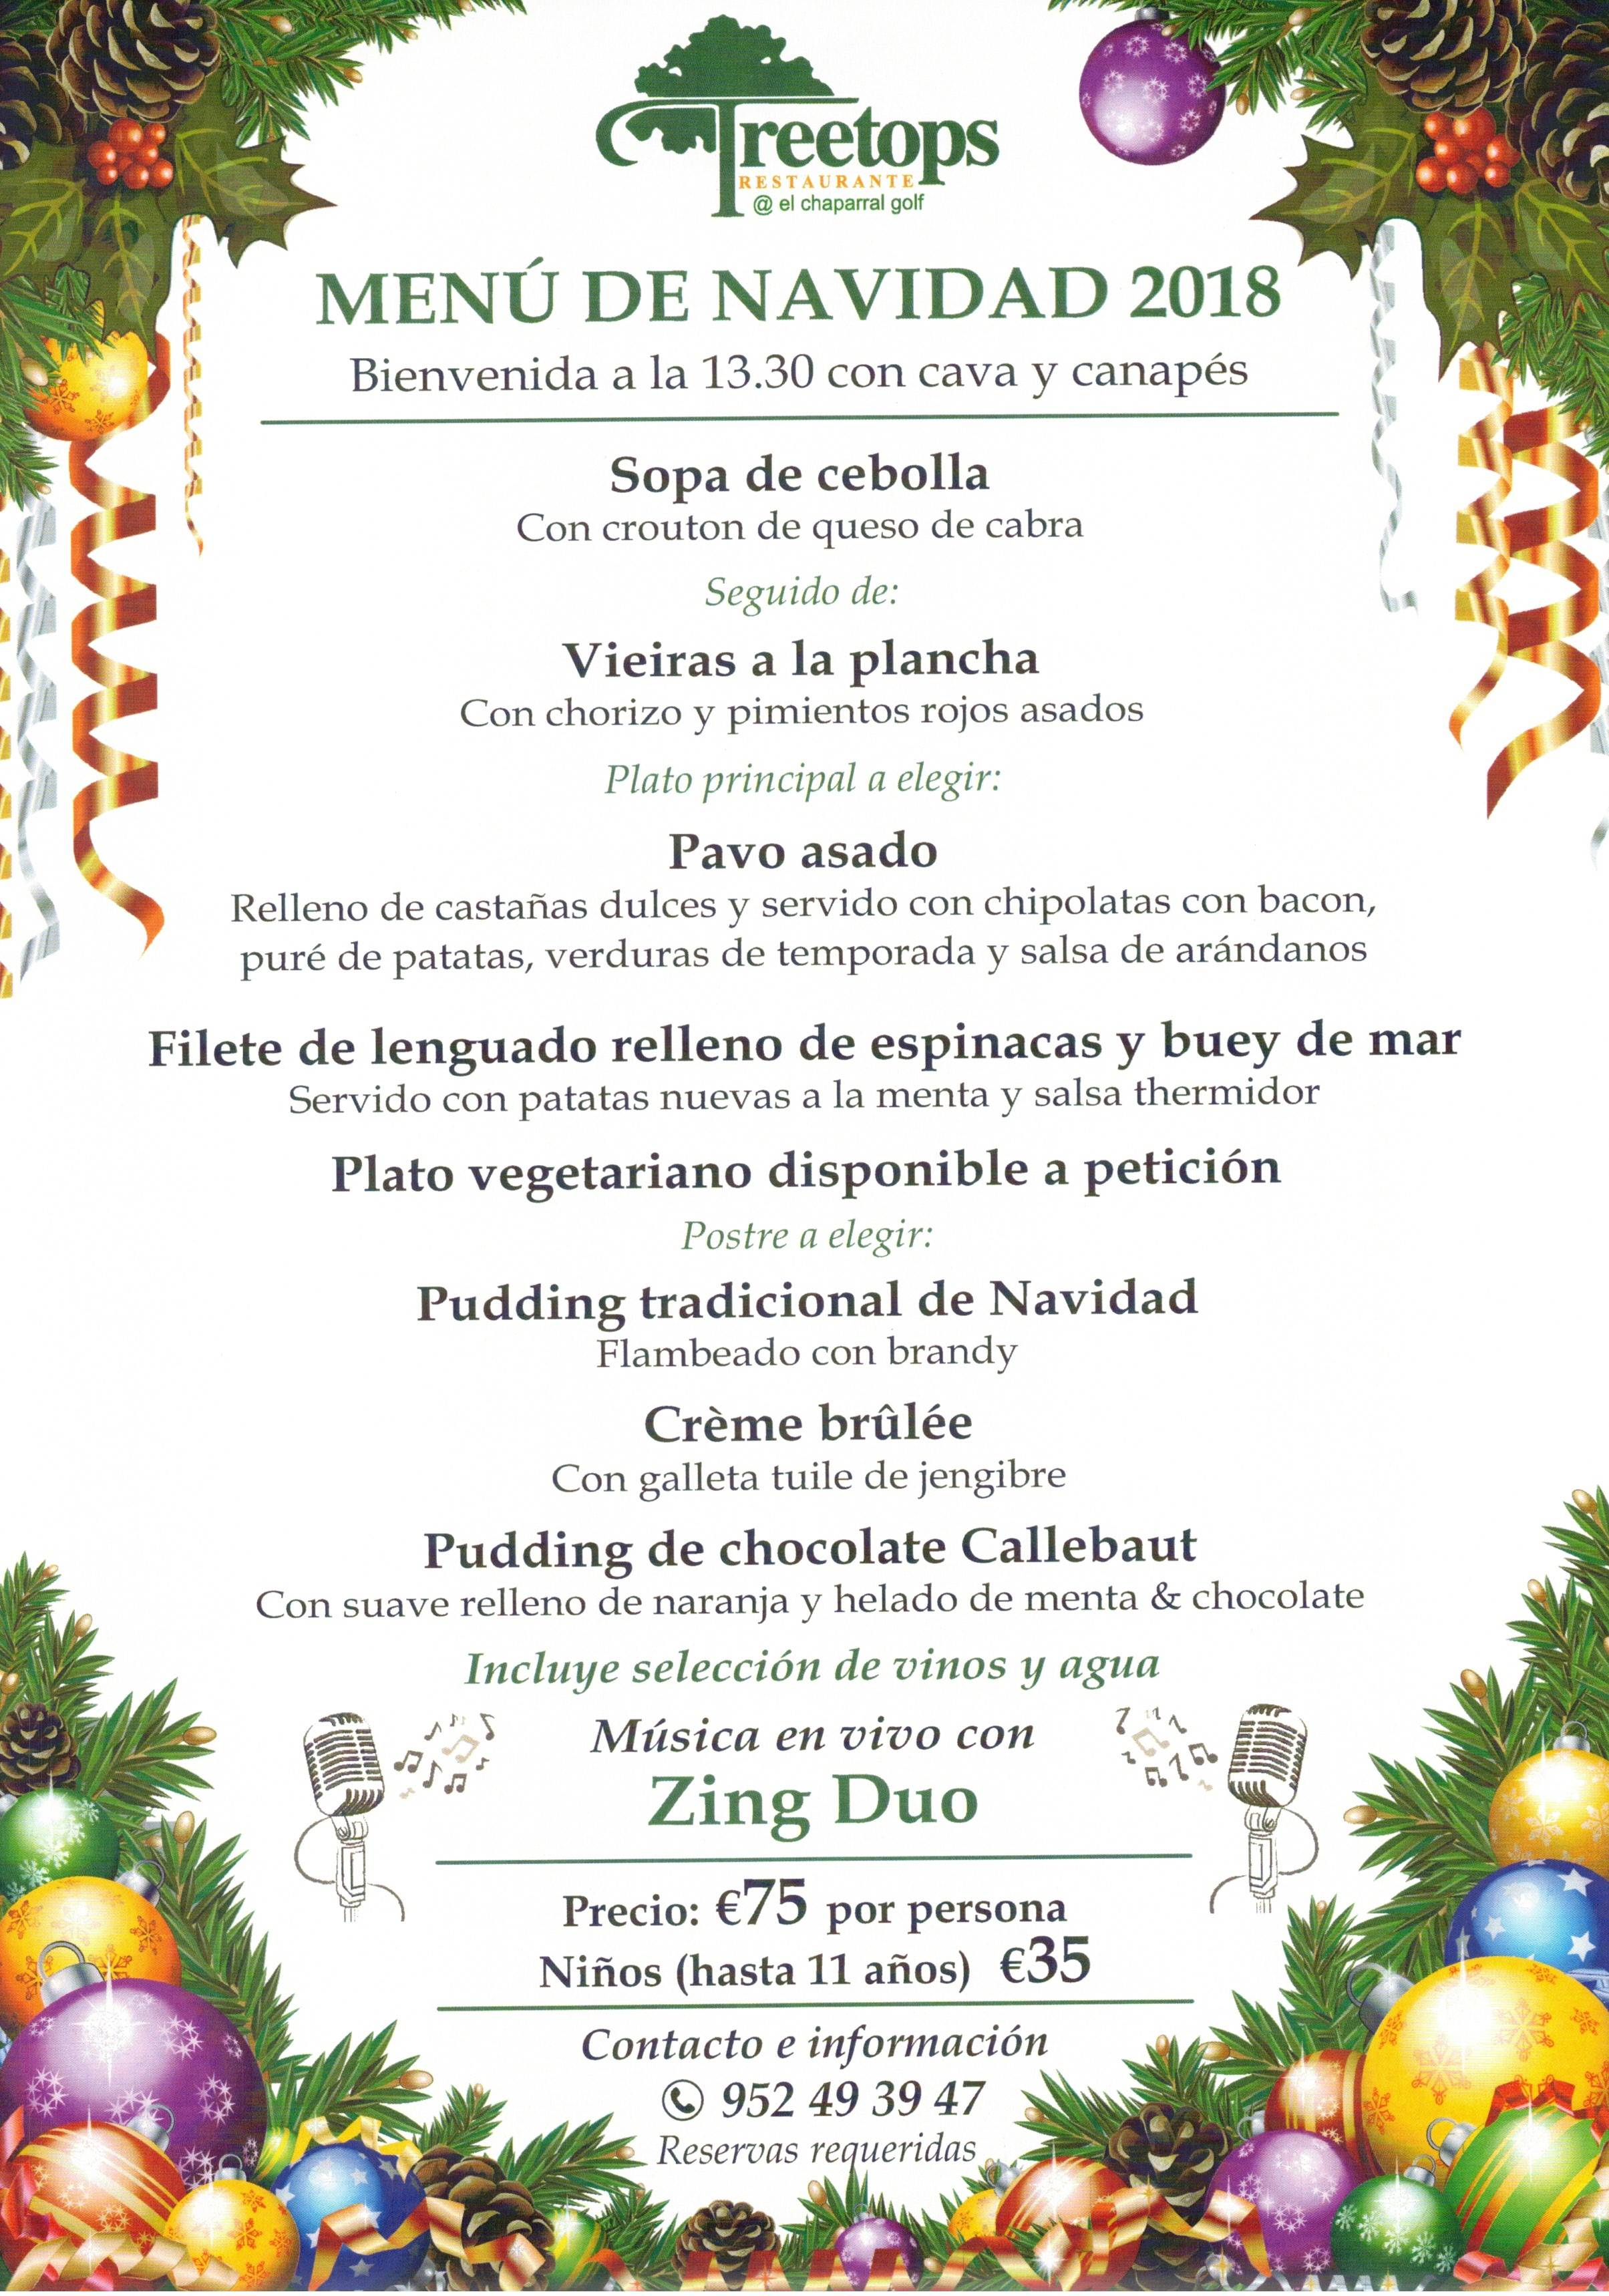 MENU NAVIDAD 2018 CHAPARRAL GOLF CLUB, MIJAS, COSTA DEL SOL